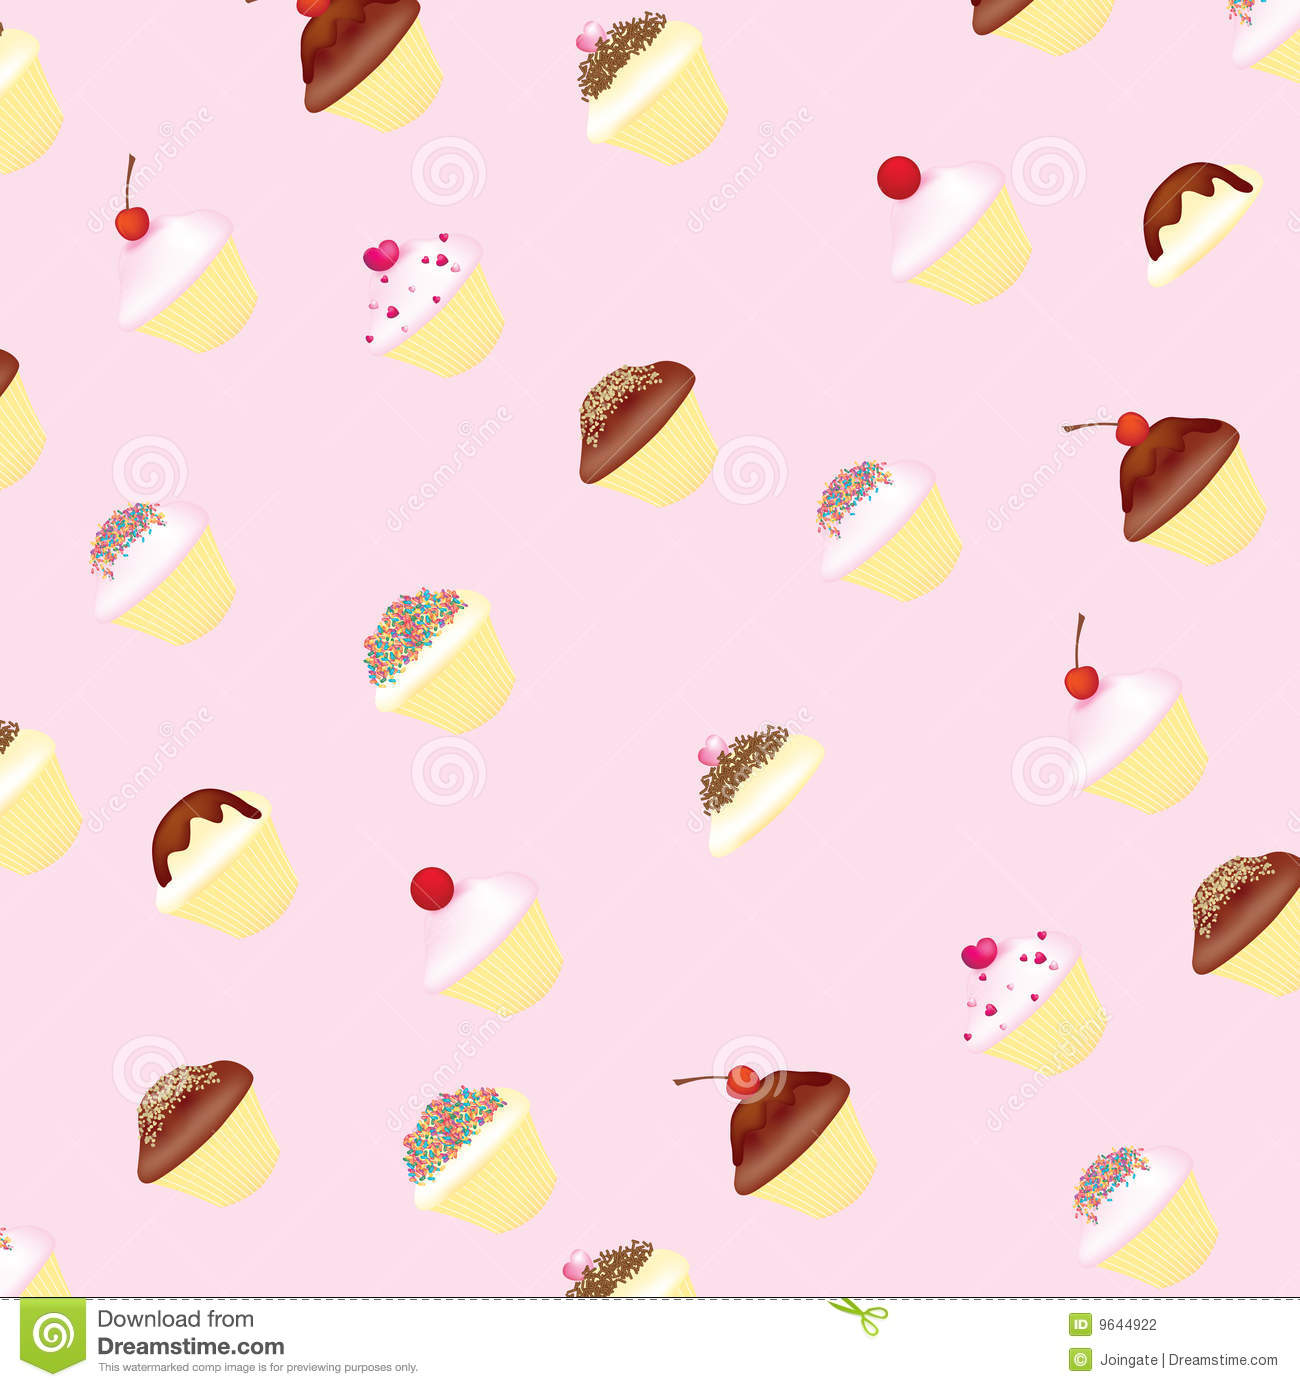 Cup cakes and fairy cake wallpaper background.